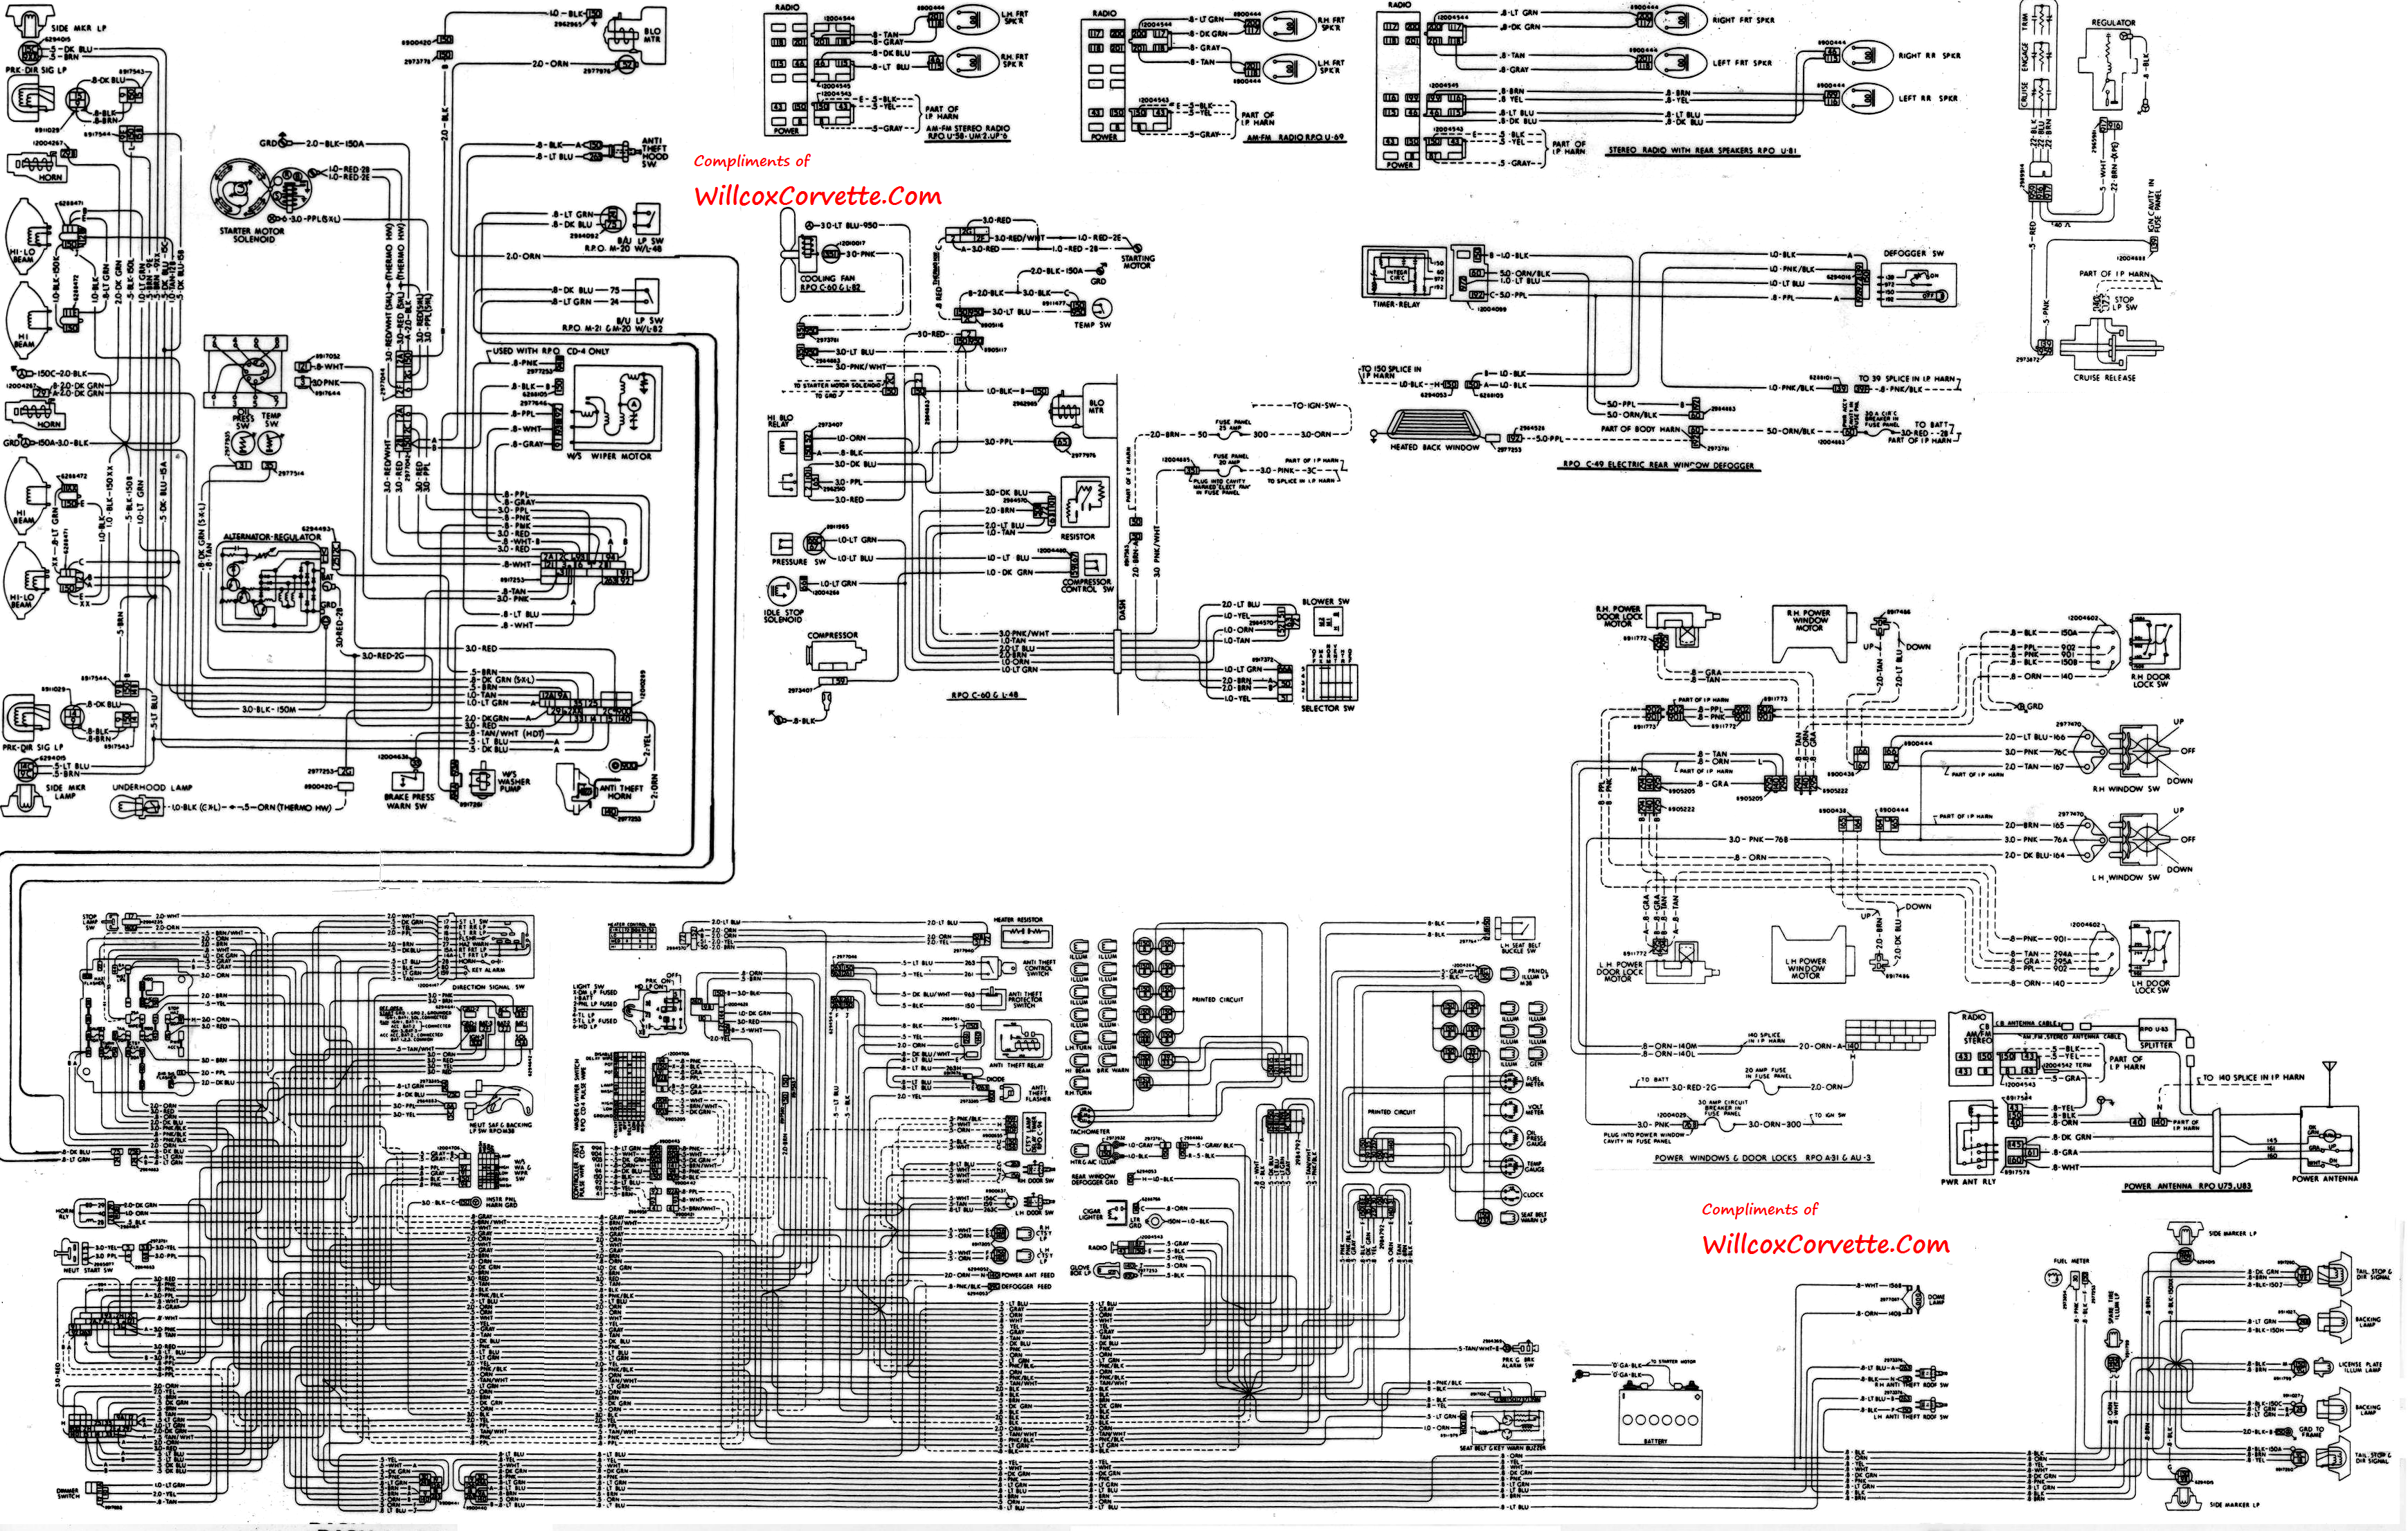 1979 wire diagram 1978 corvette wiring diagram pdf 1980 el camino wiring diagram 1978 corvette wiring harness at bakdesigns.co